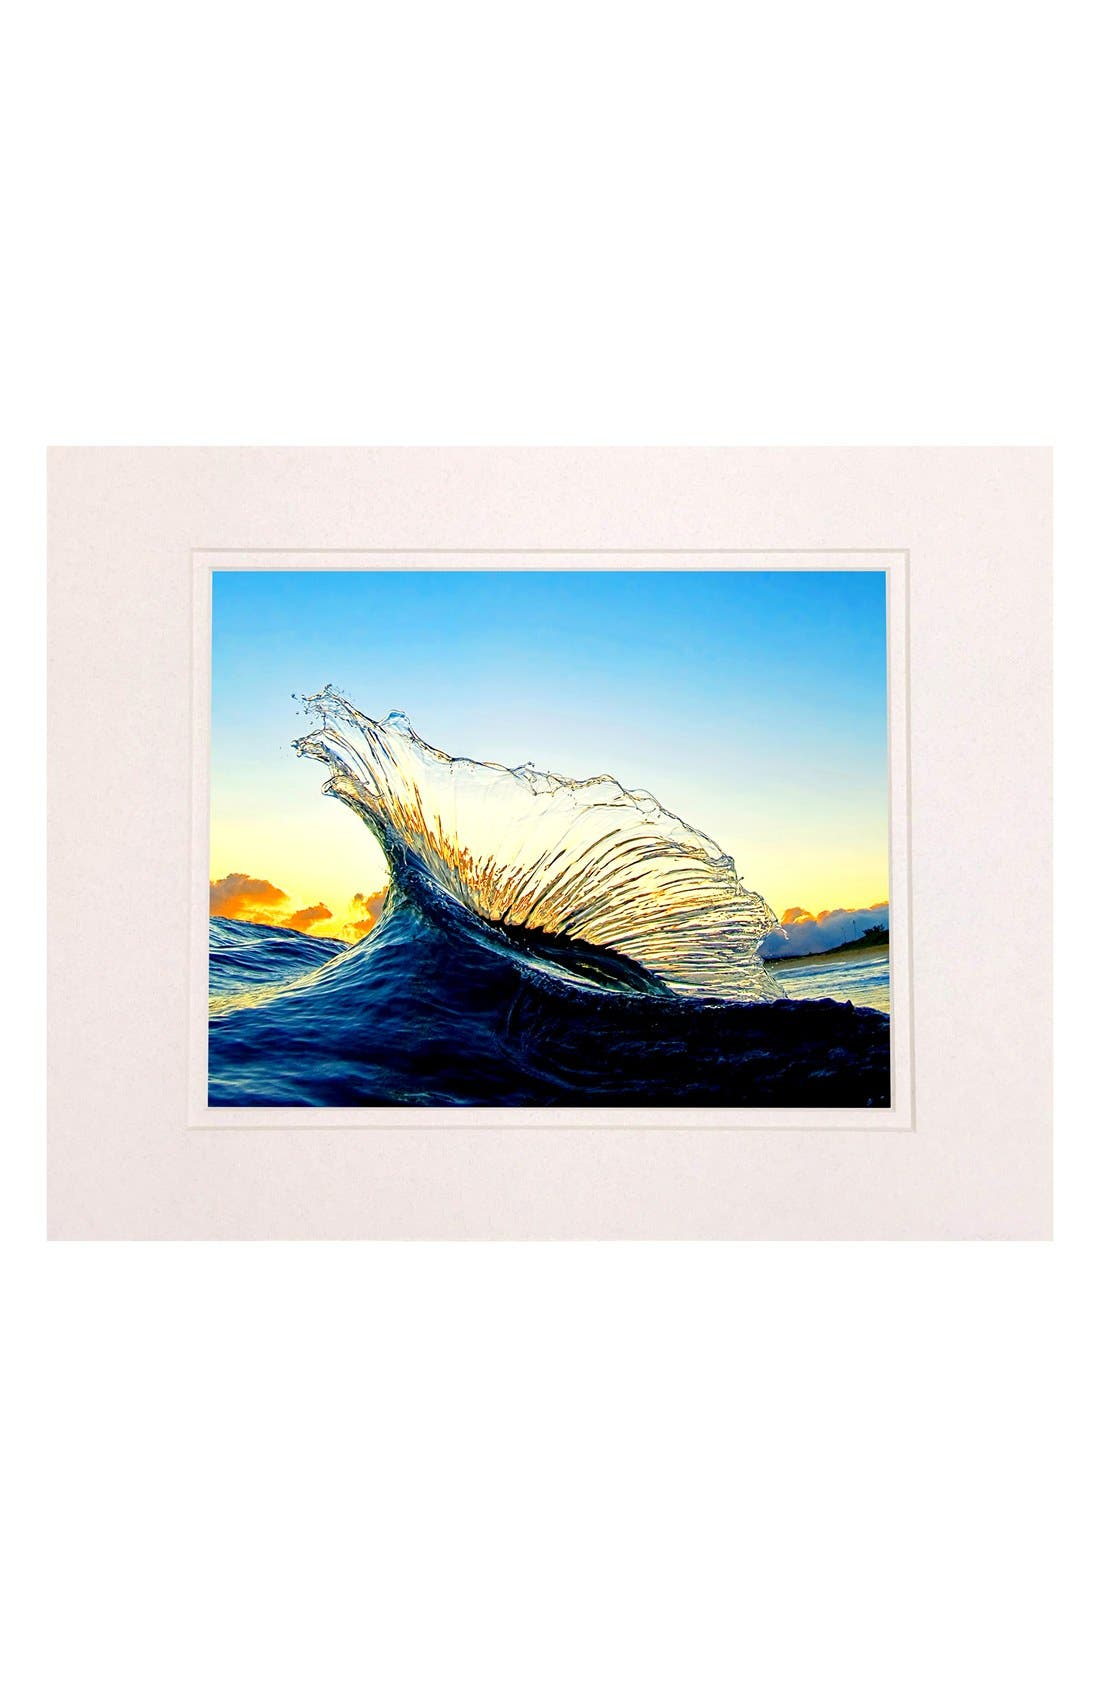 'Marlin' Matted Print,                             Main thumbnail 1, color,                             400